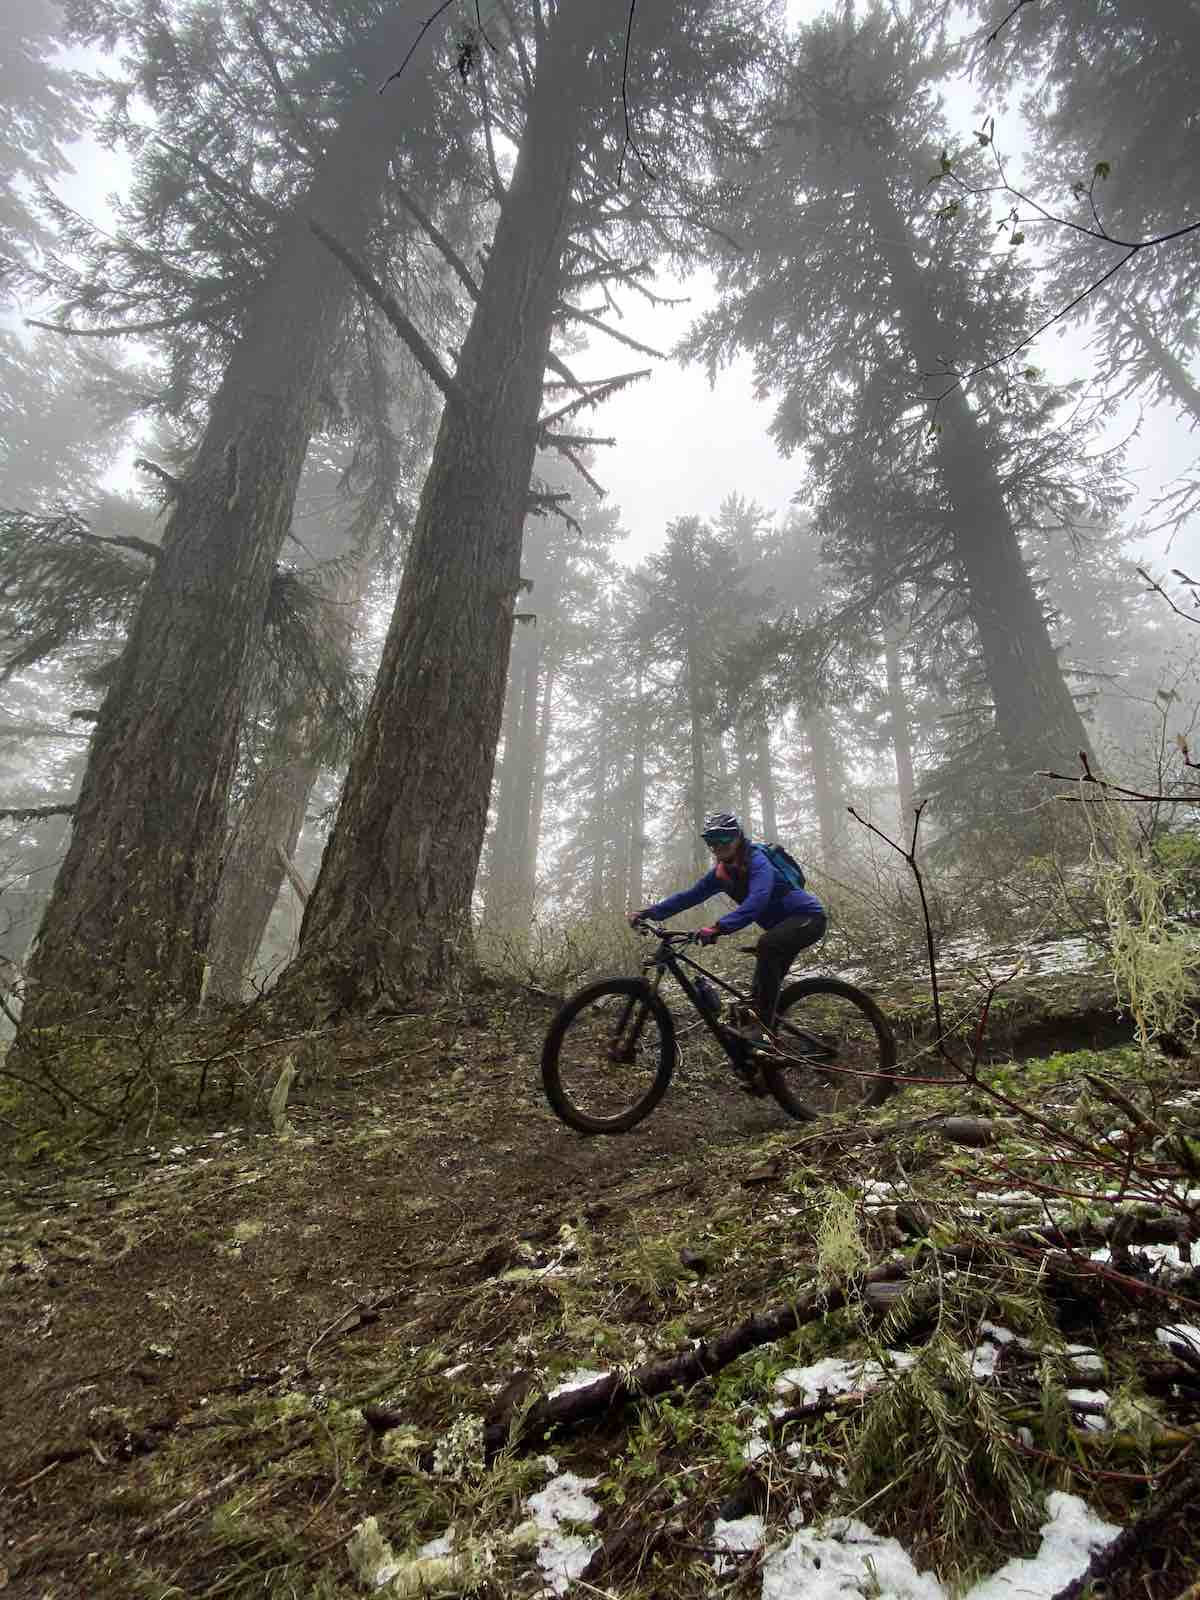 bikerumor pic of the day a cyclist ride through large cedar trees in a slight fog with patches of snow on the ground in oakridge oregon.